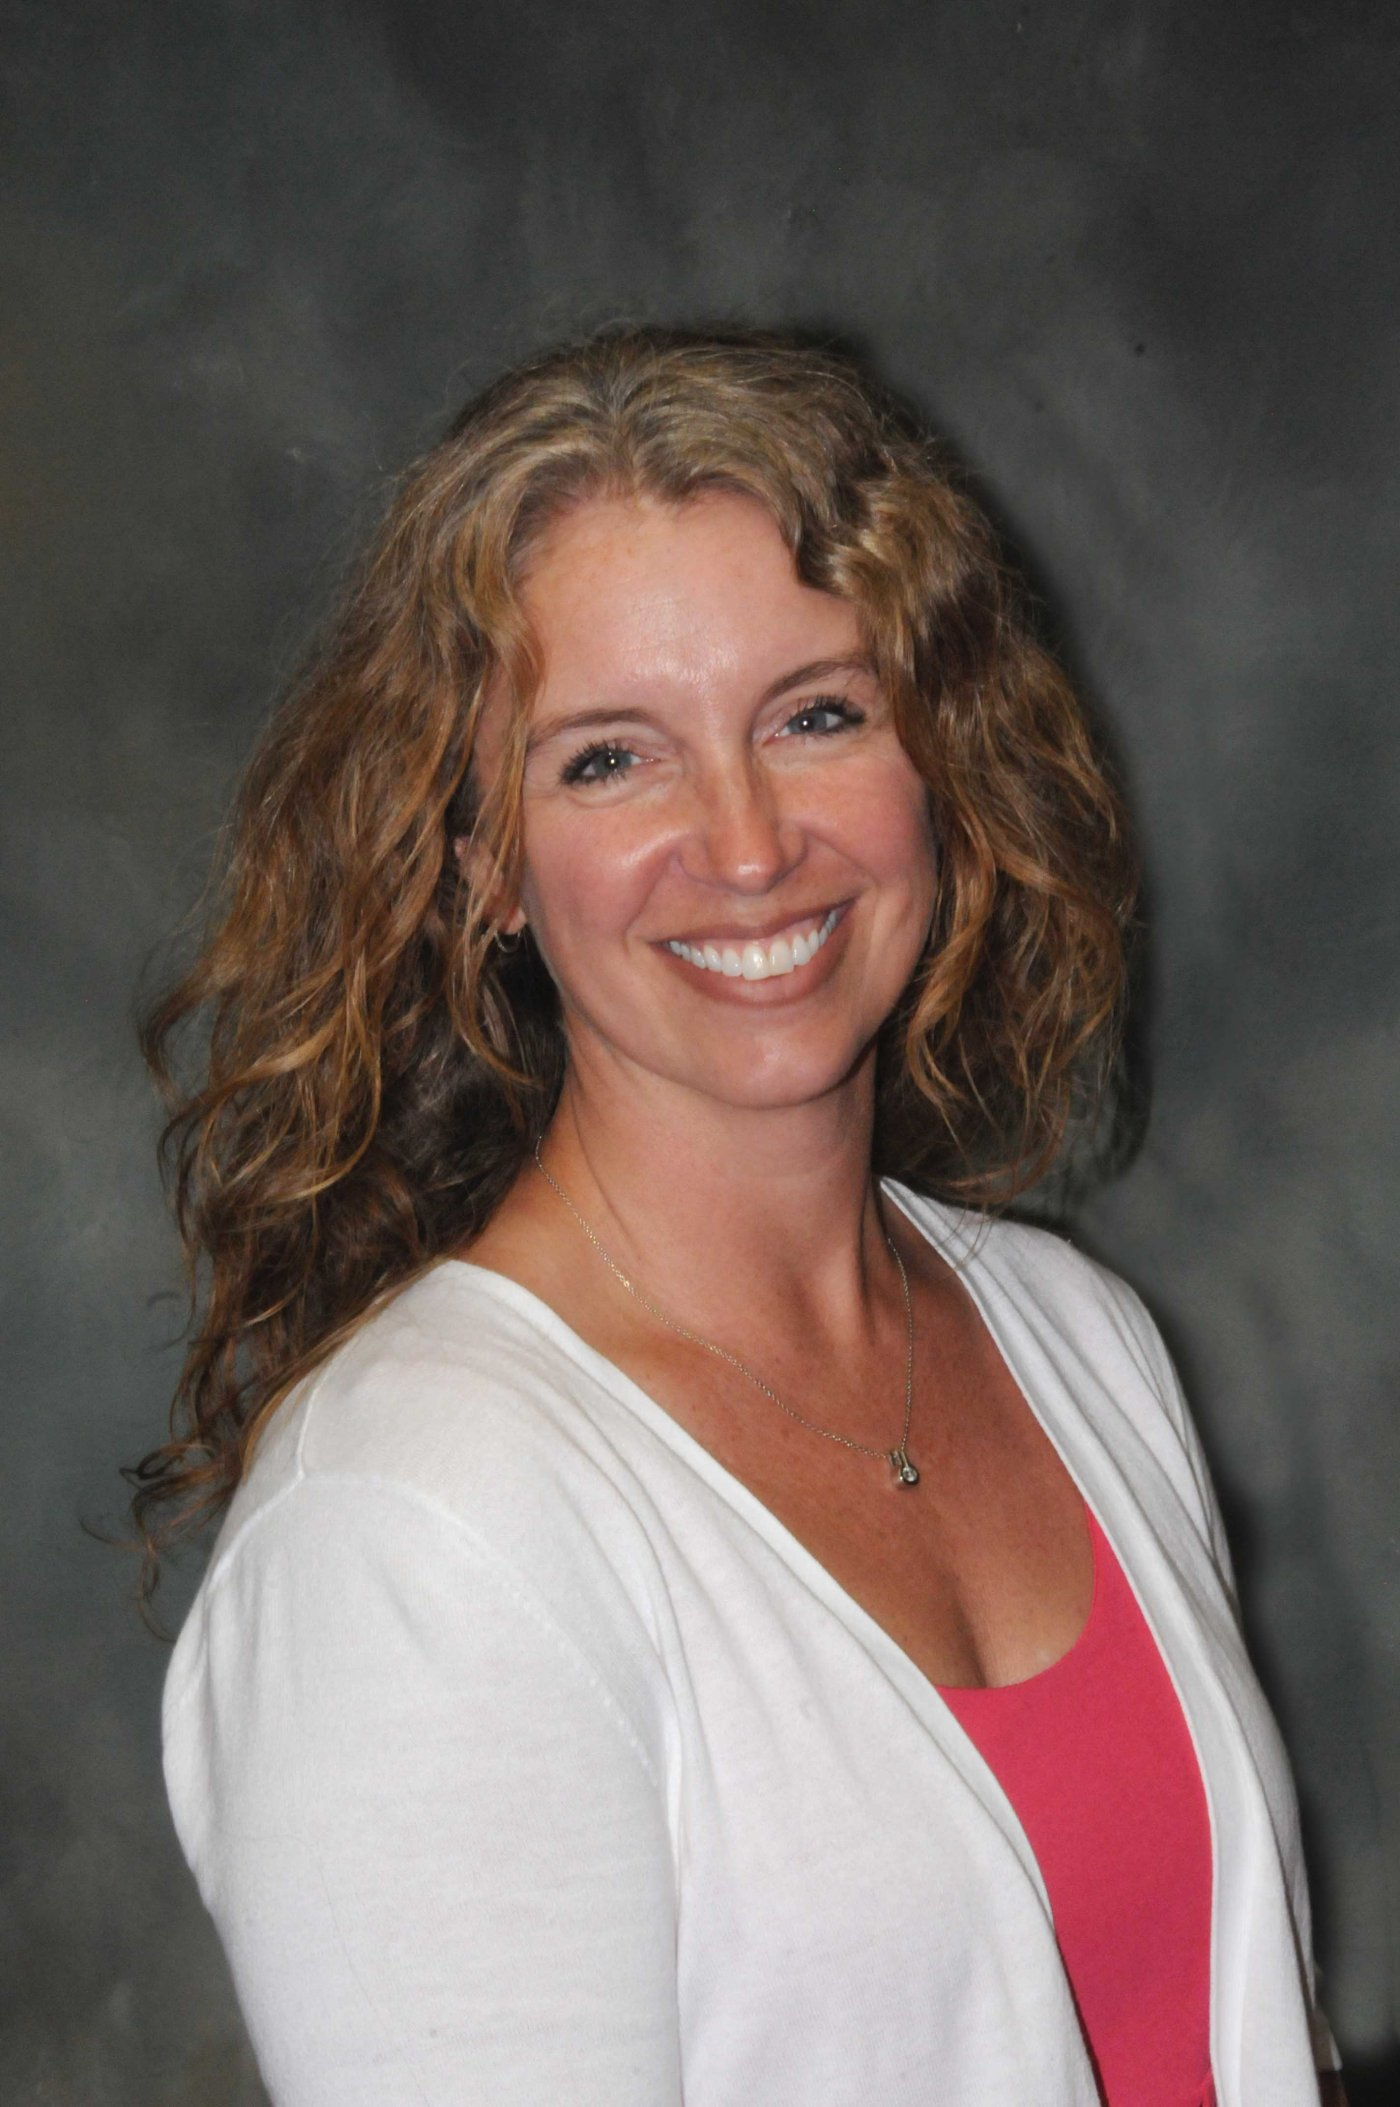 Dr Shannon Finks Receives American Society Of Hypertension